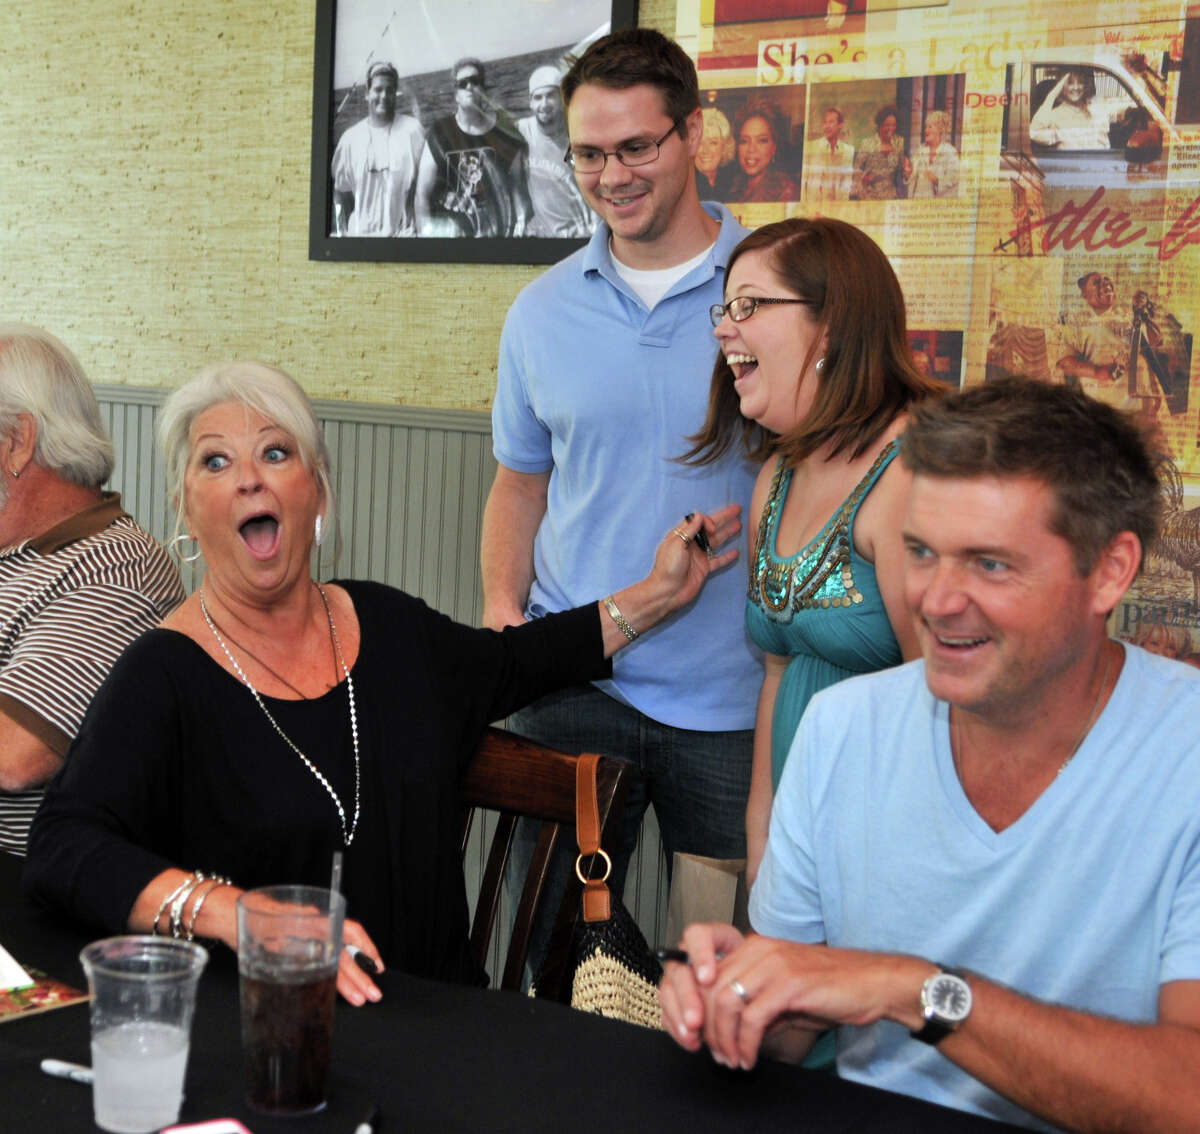 Paula Deen, left, and her son Jamie Deen, right, greet fans at a recent book signing in Savannah, Ga.